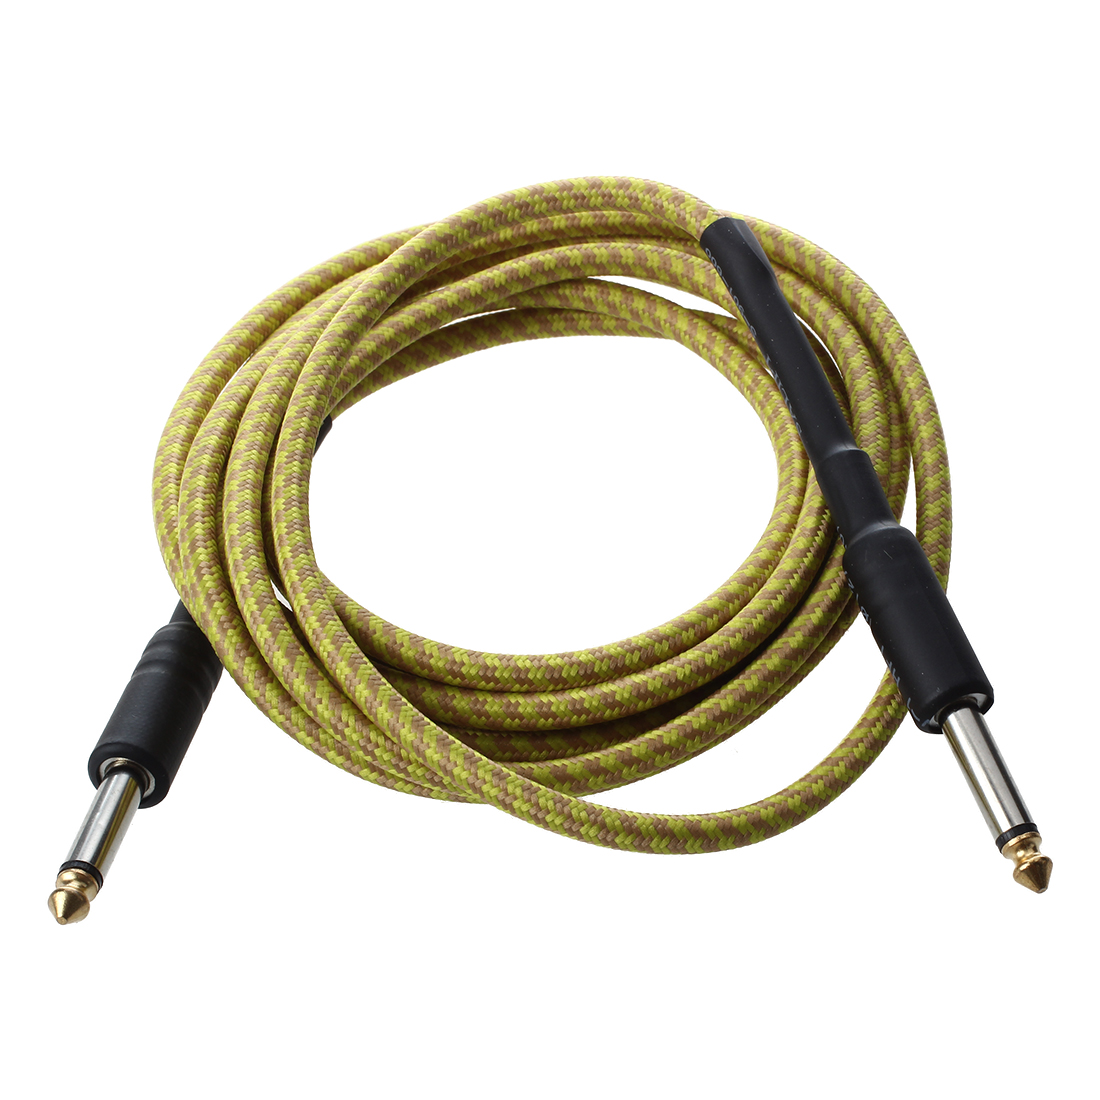 Yellow Connection Cable For Acoustic Guitar Electric Bass 3M